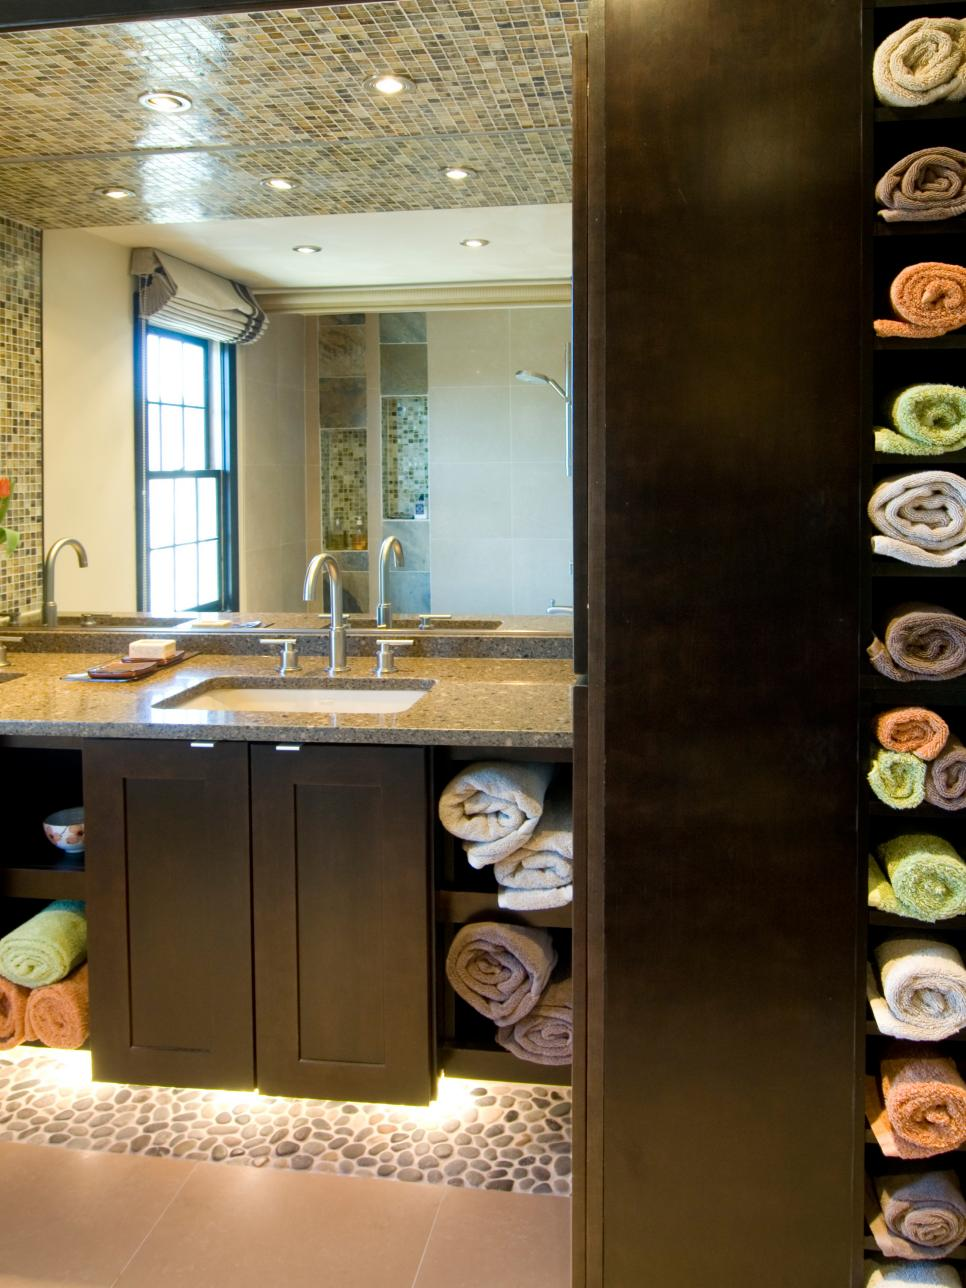 Clever Bathroom Storage Ideas HGTV - Cheap decorative towels for small bathroom ideas